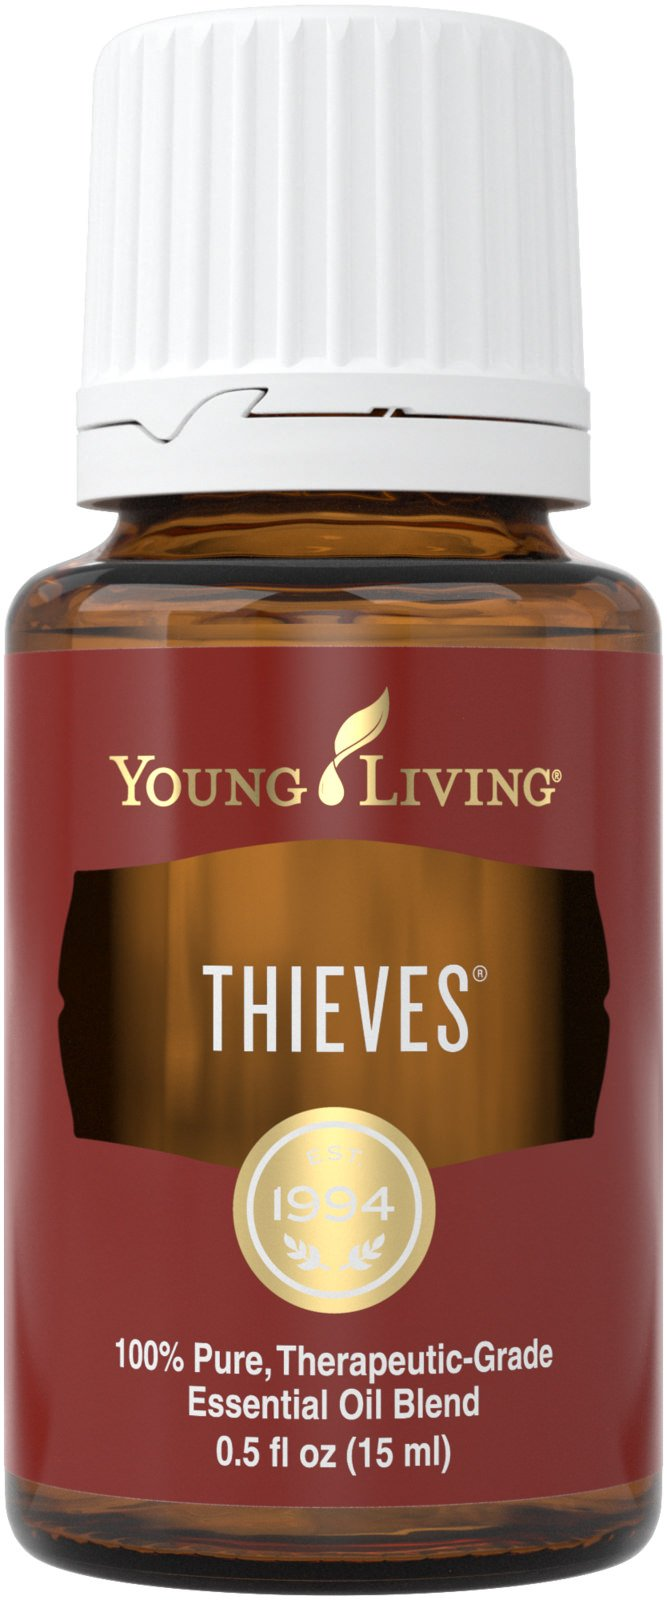 Thieves Essential Oil Blend by Young Living, 15 Milliliters, Topical and Aromatic